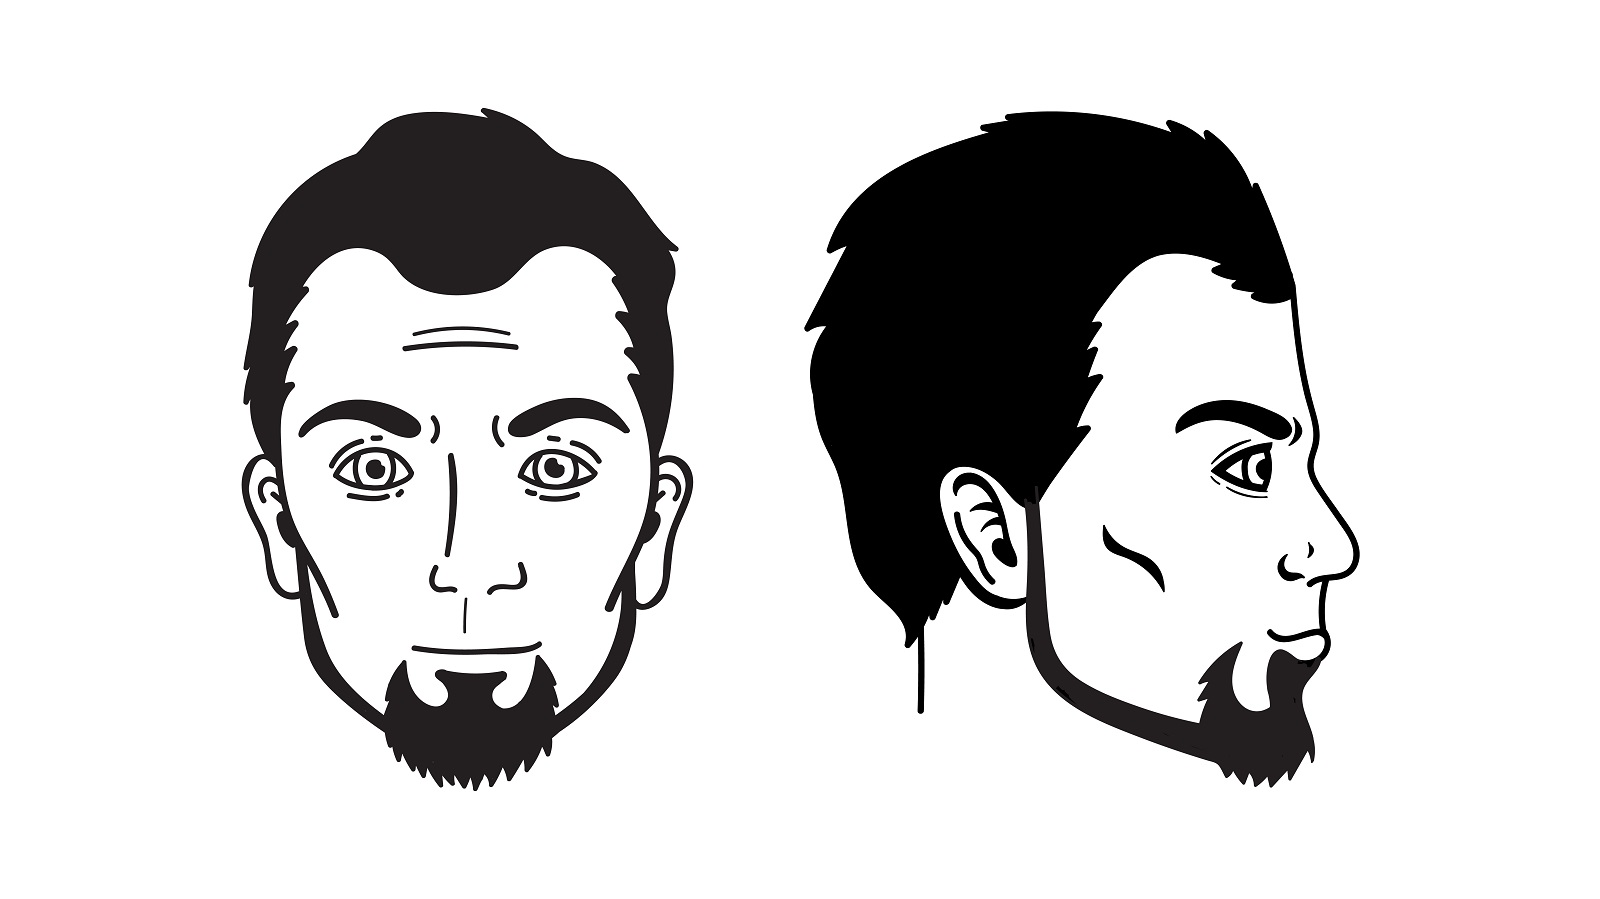 Chinstrap & Goatee, a Facial Hair Style